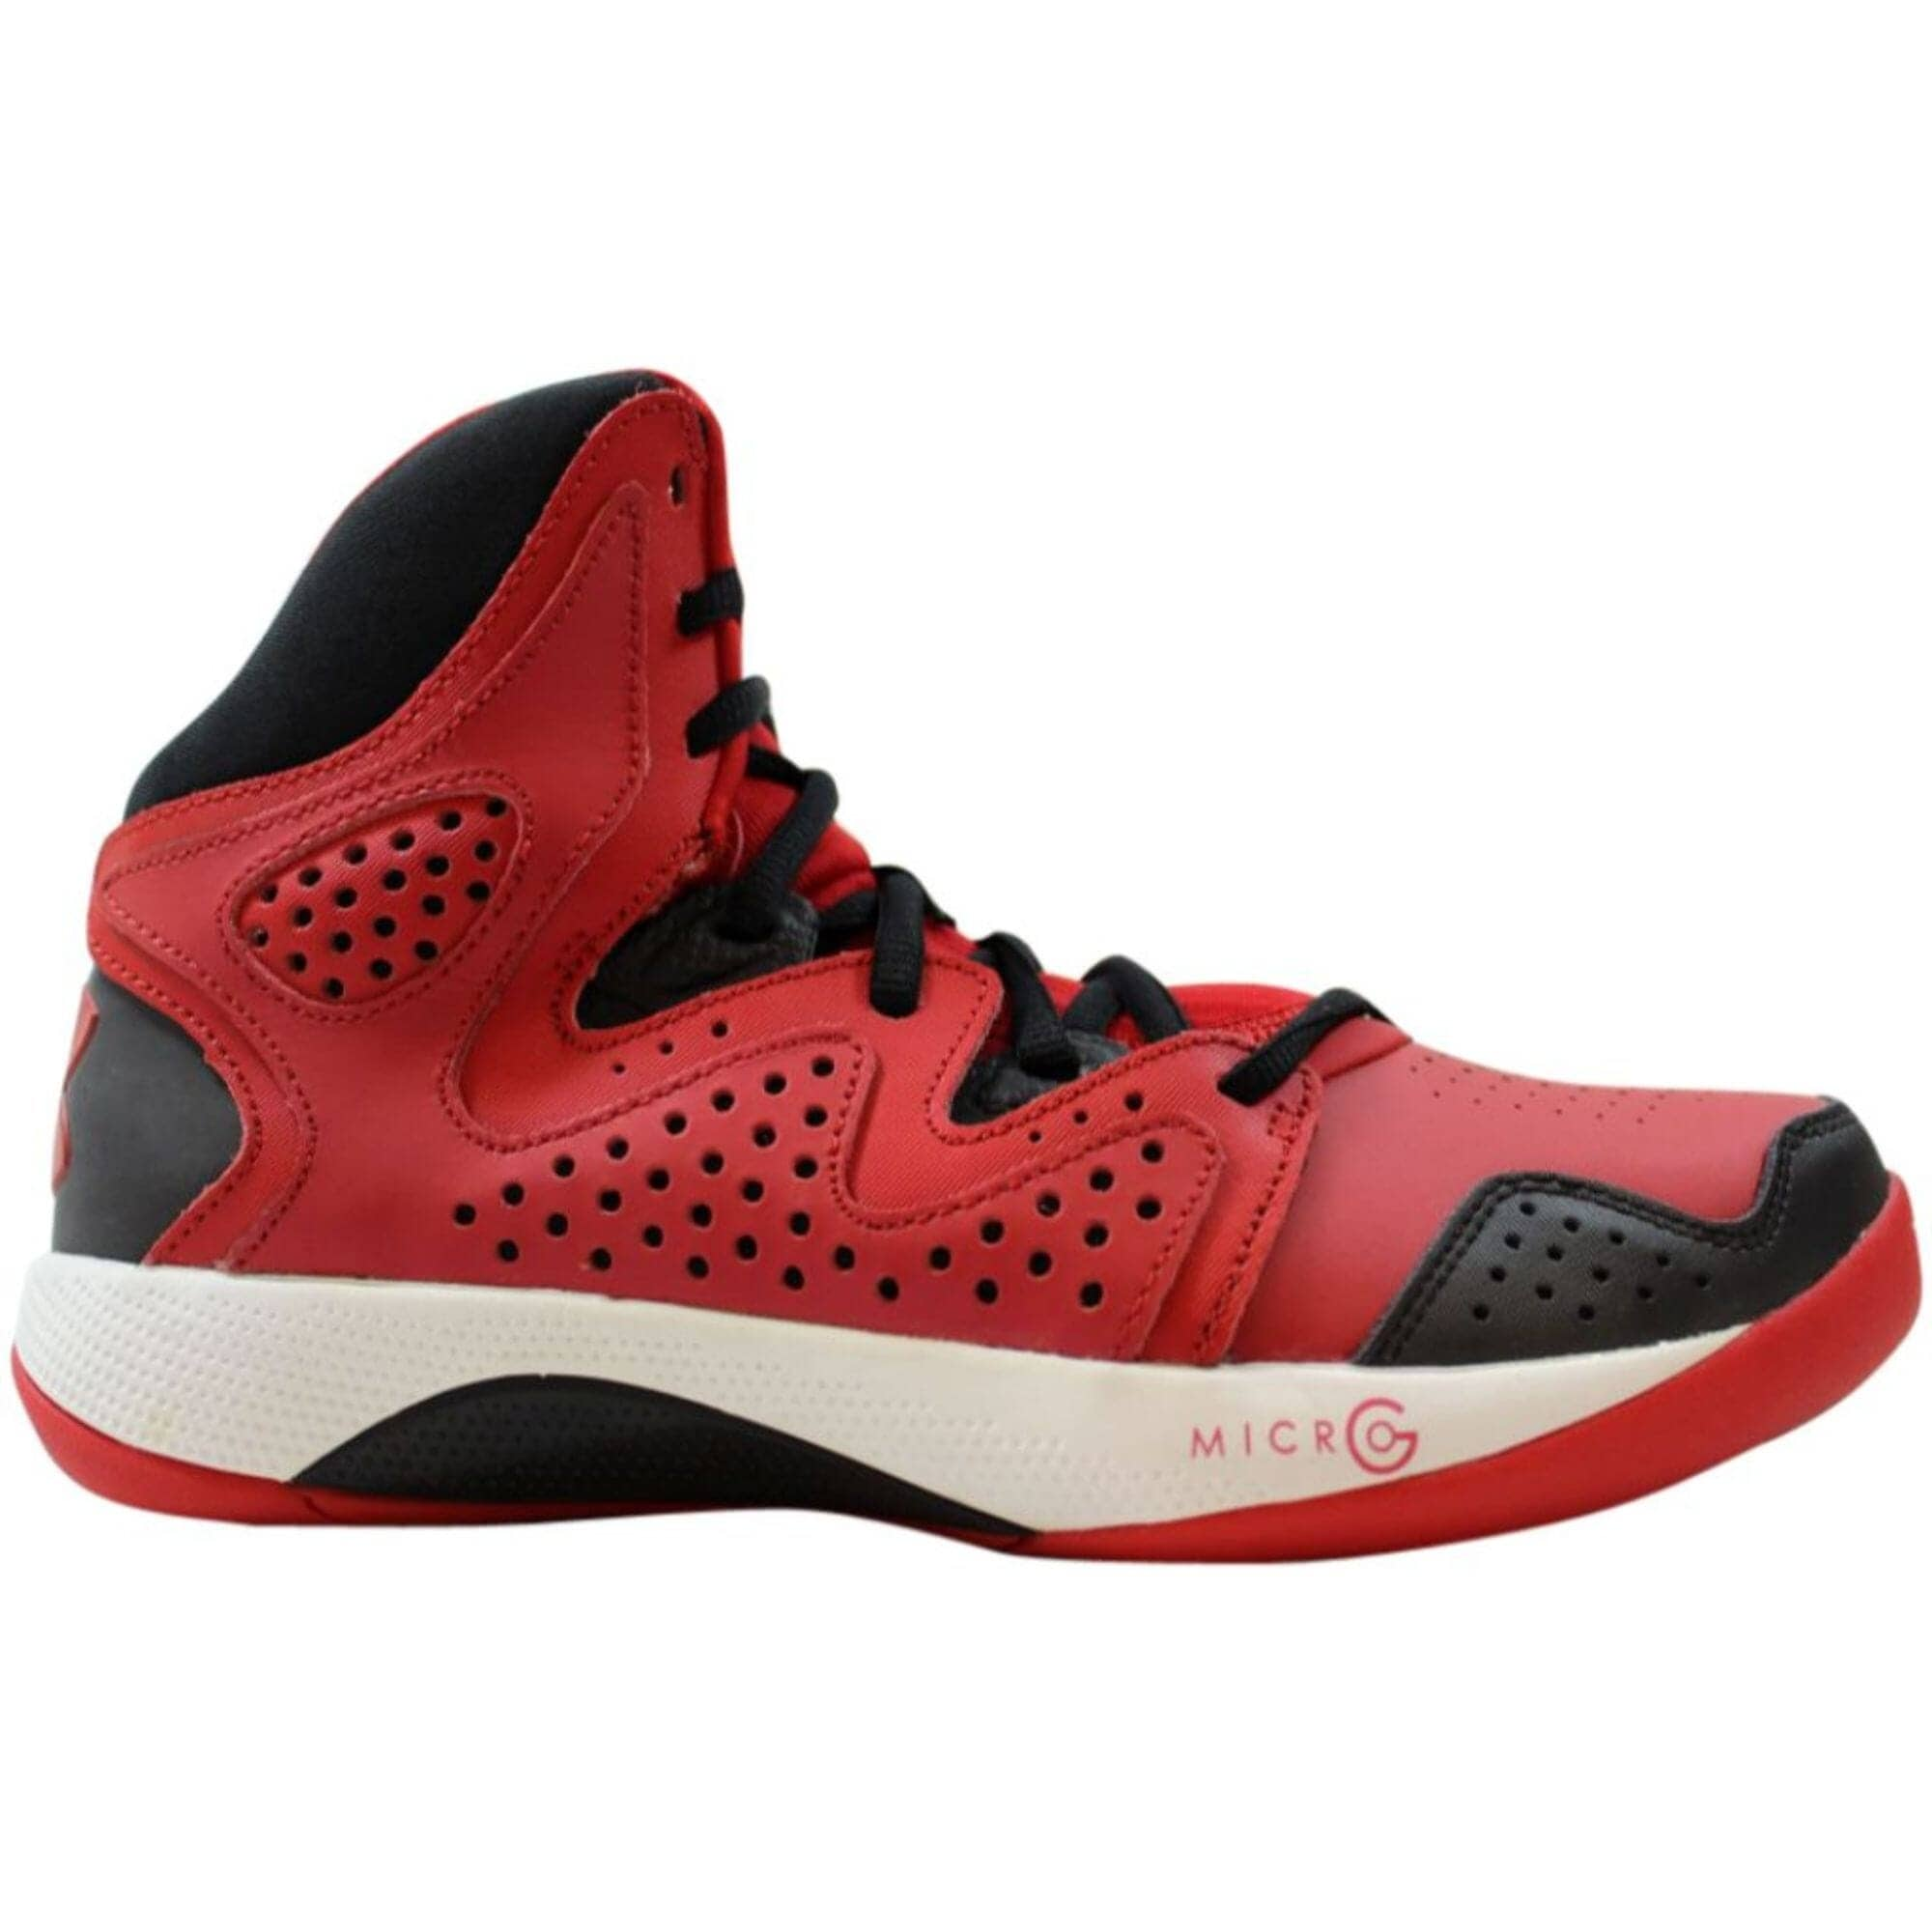 Under Armour Micro G Torch 2 Red